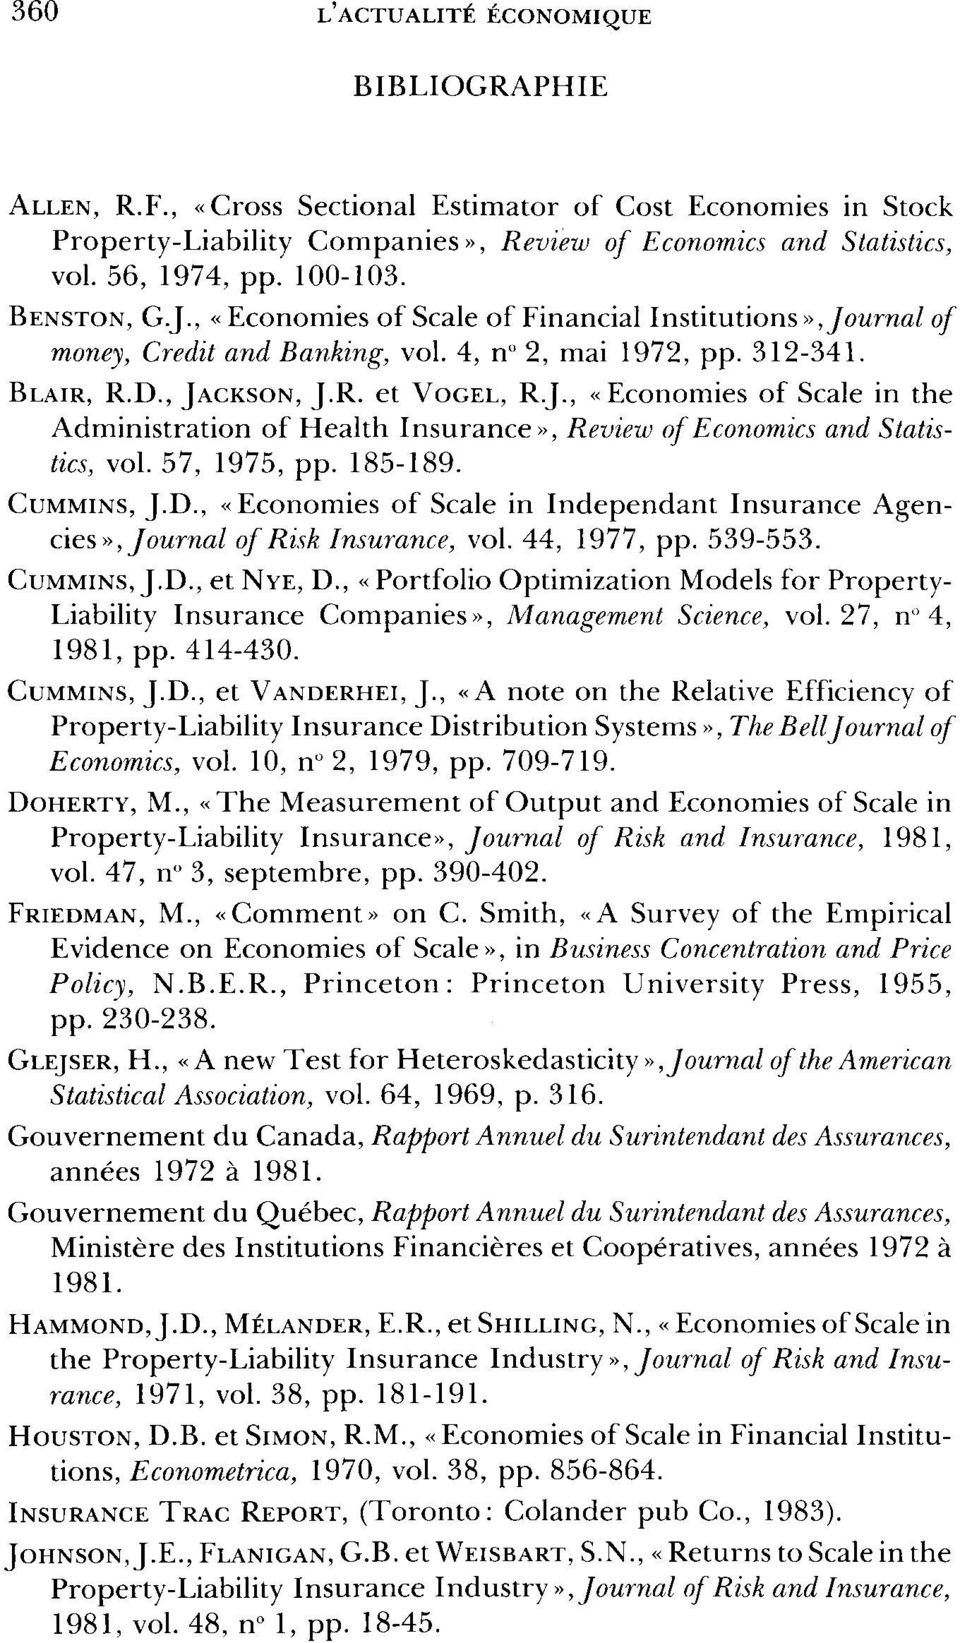 57, 1975, pp. 185-189. CUMMINS, J.D., «Economies of Scale in Indépendant Insurance Agencies», Journal of Risk Insurance, vol. 44, 1977, pp. 539-553. CUMMINS, J.D., et NYE, D.